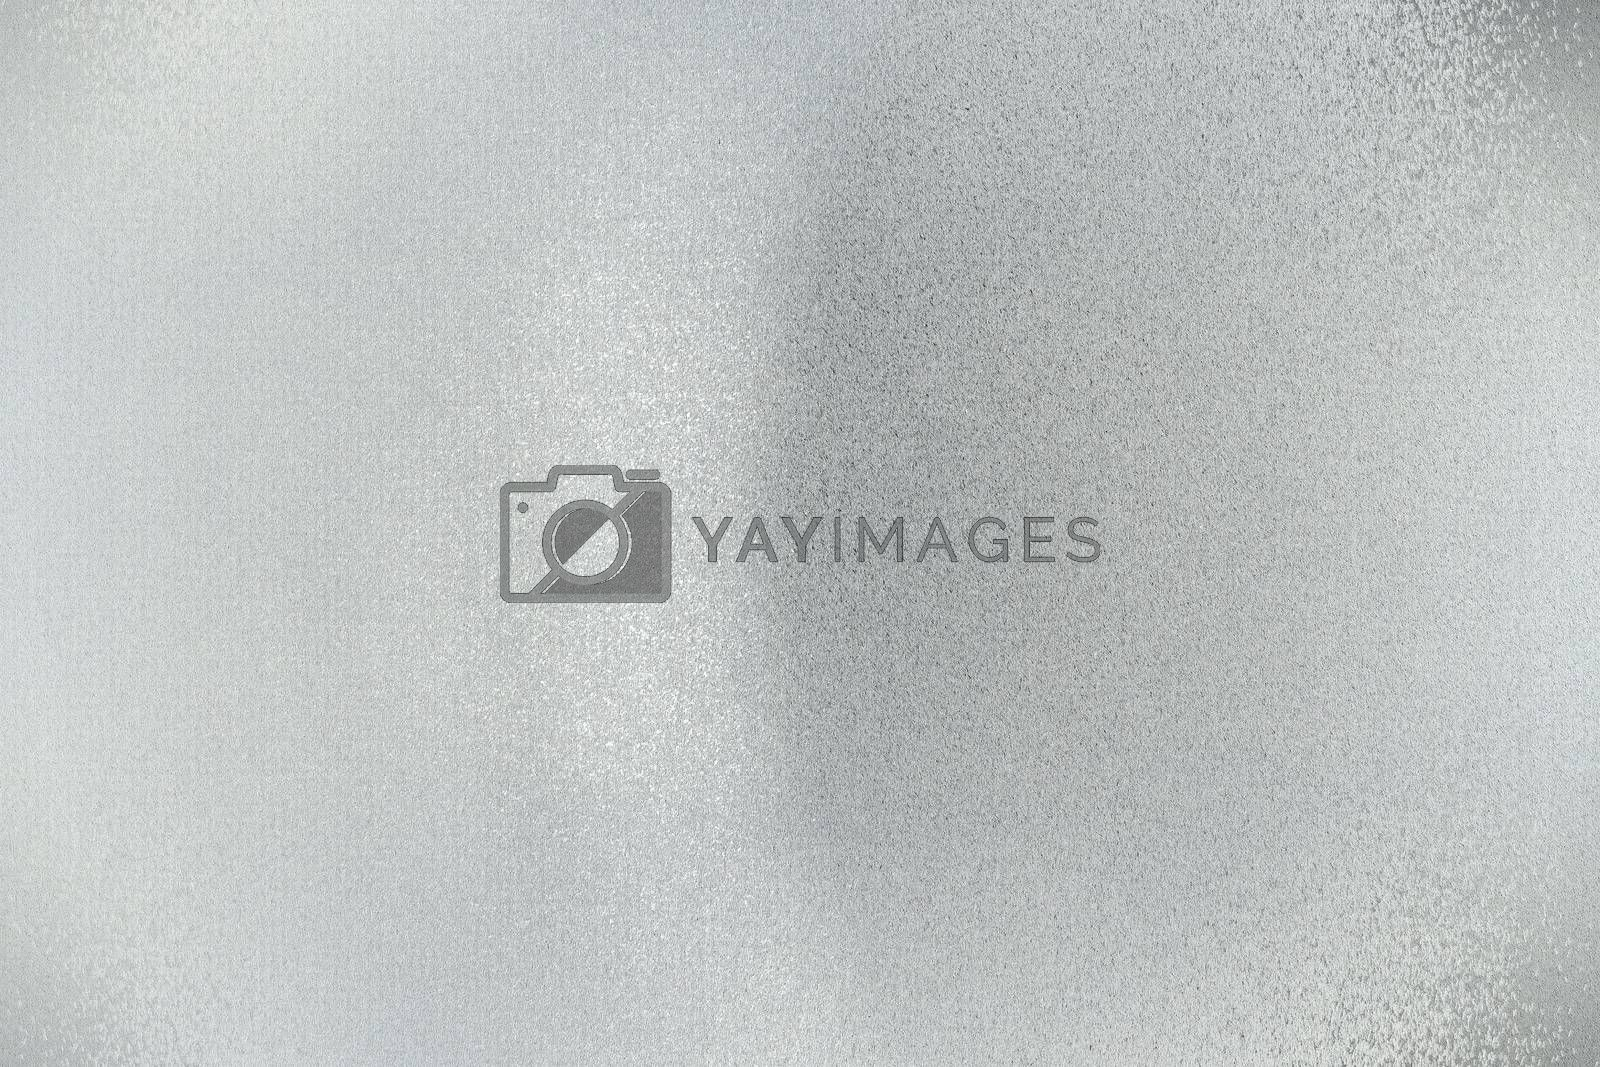 Royalty free image of Dirty silver wave metal plate, abstract texture background by mouu007